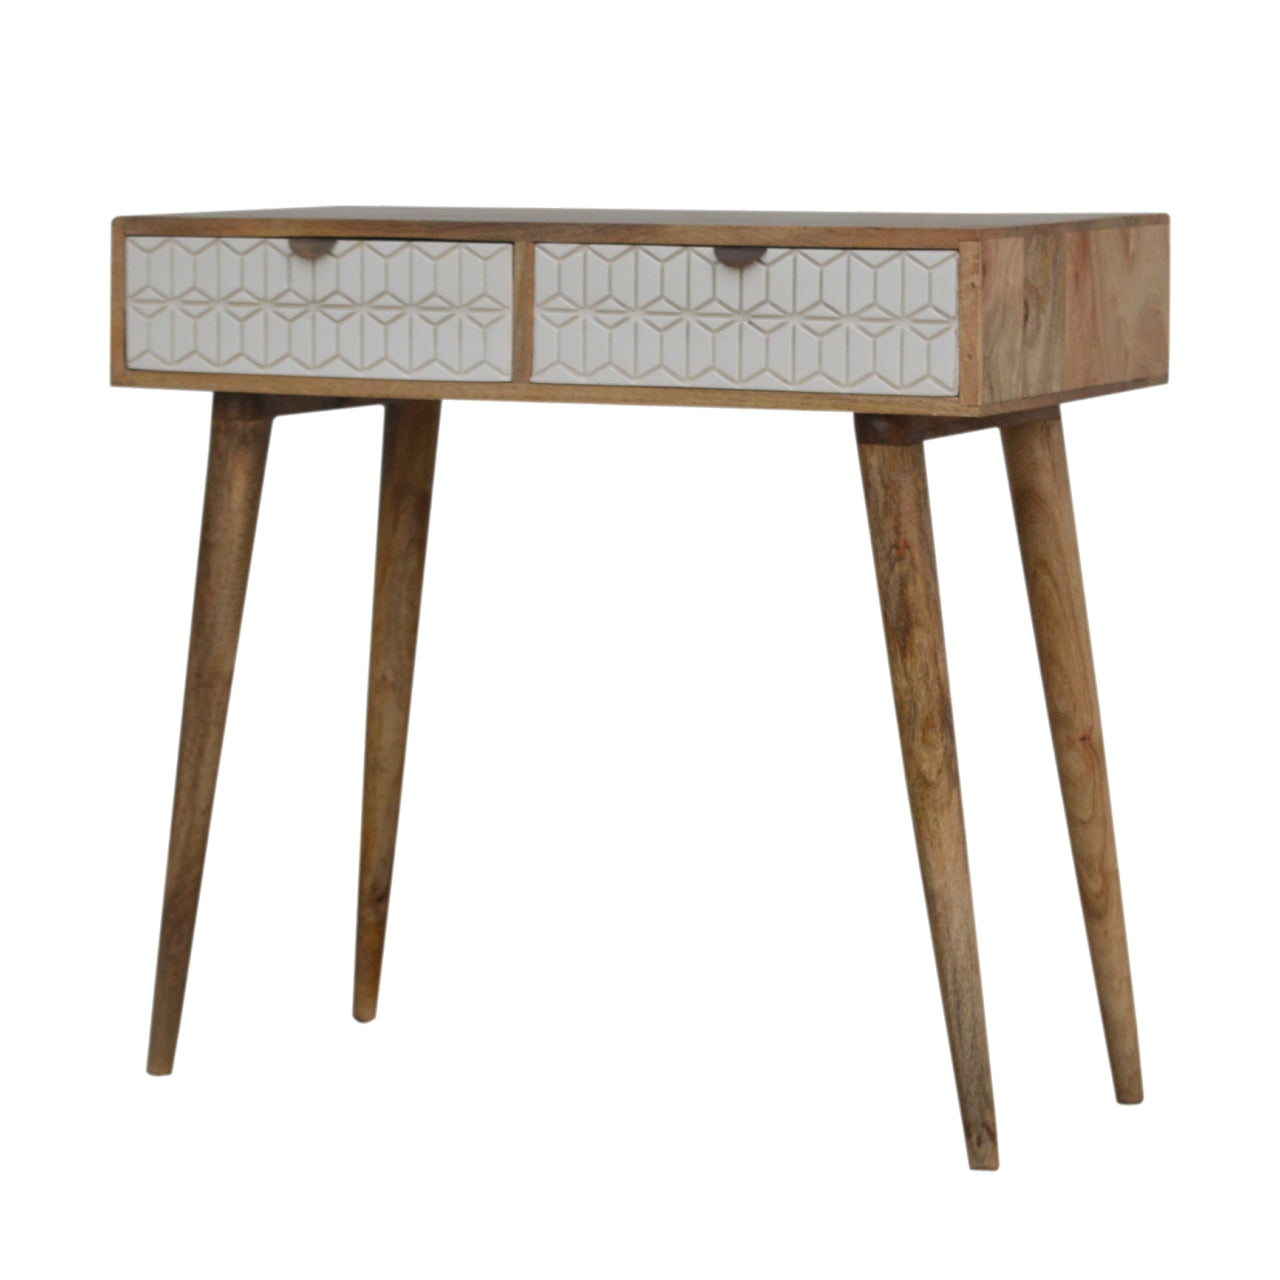 Hive writing desk from Mocha Home UK 8906057245390